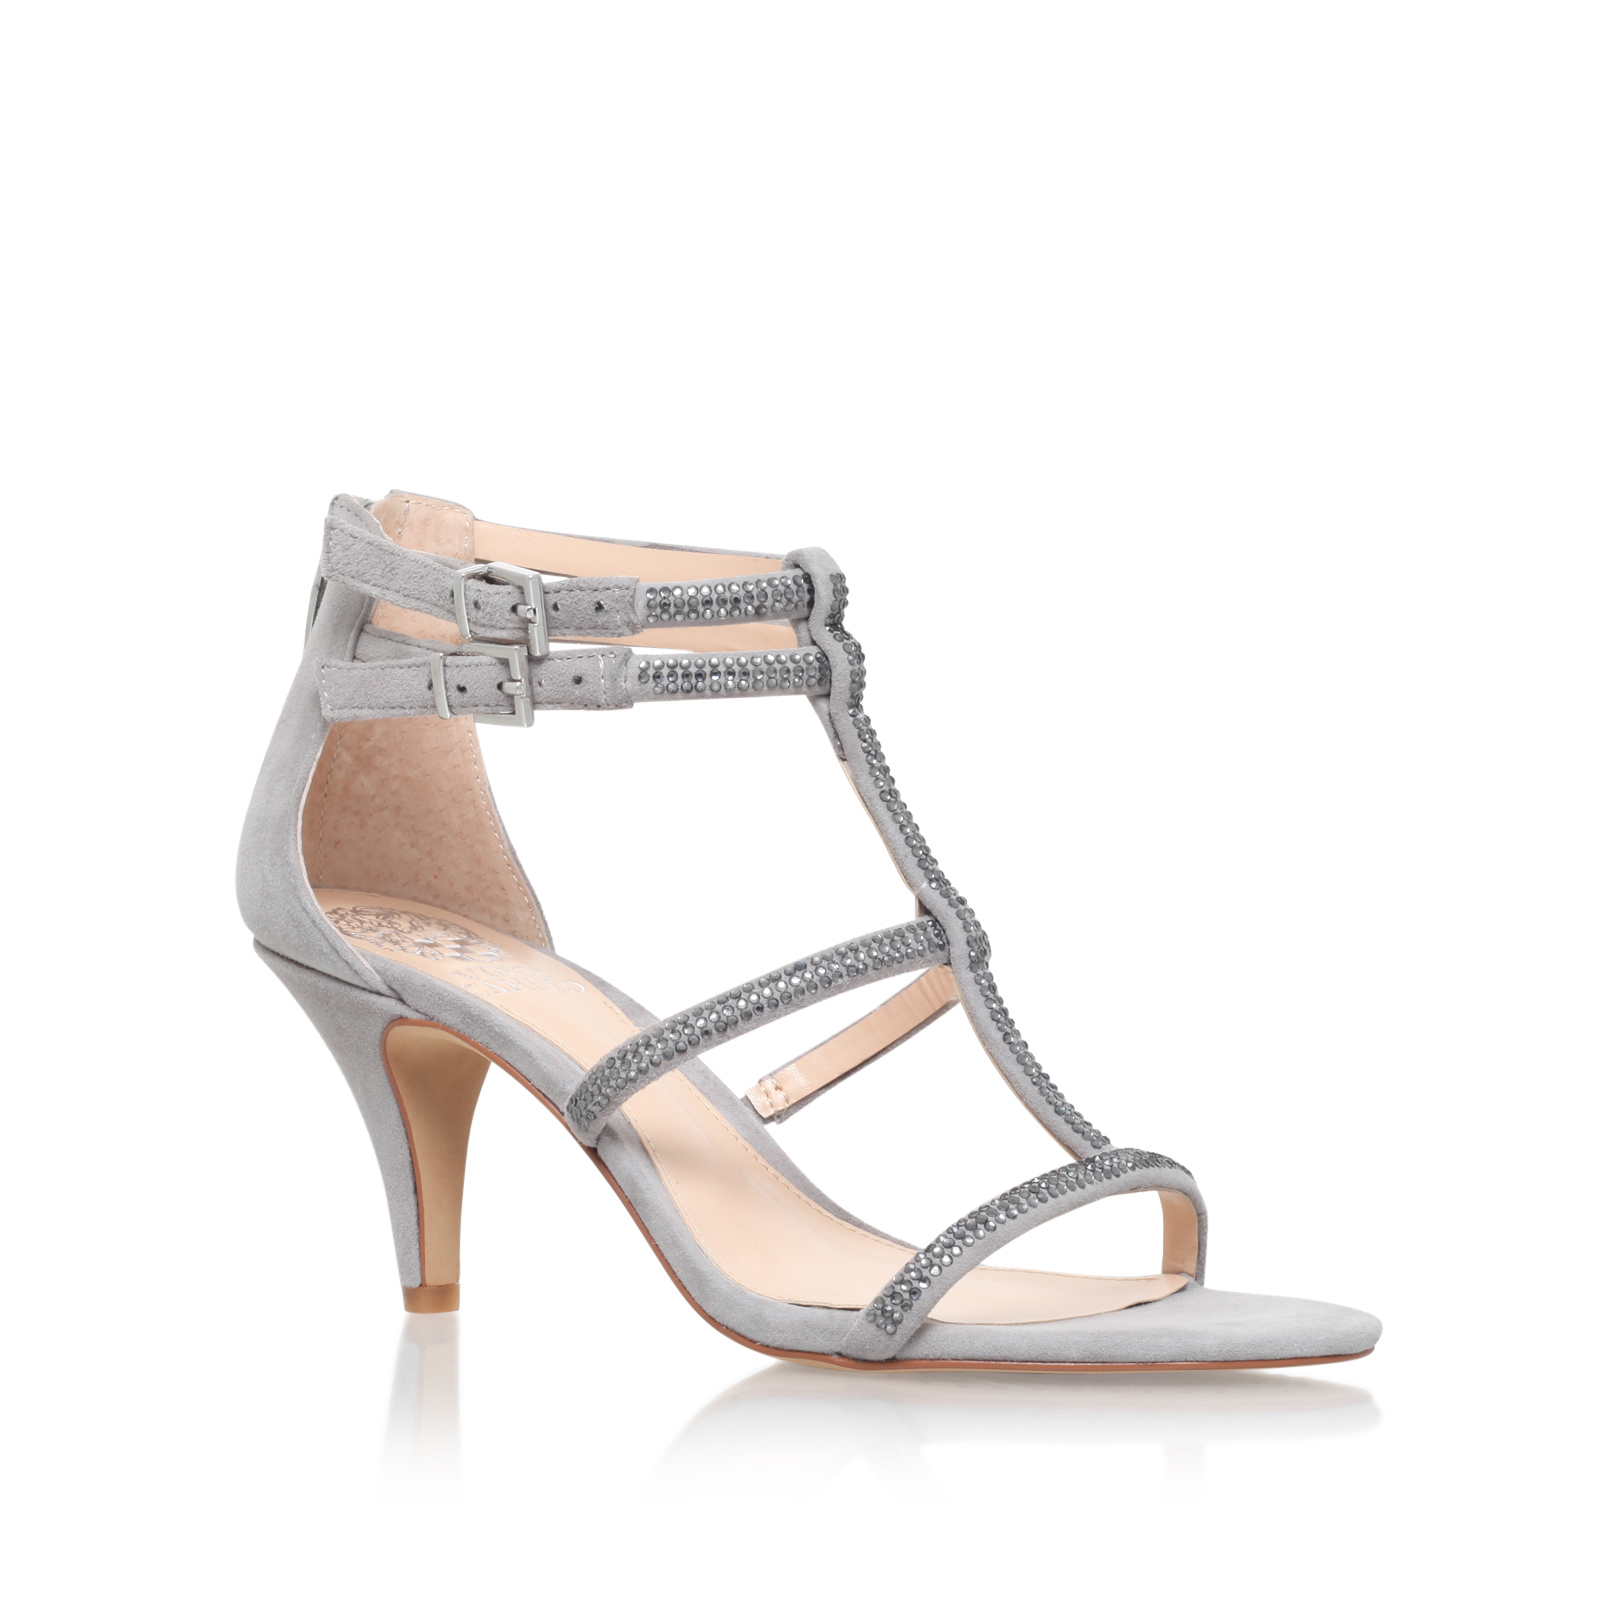 8f856f74a4 Vince Camuto | MALLA Grey Mid Heel Sandals by VINCE CAMUTO